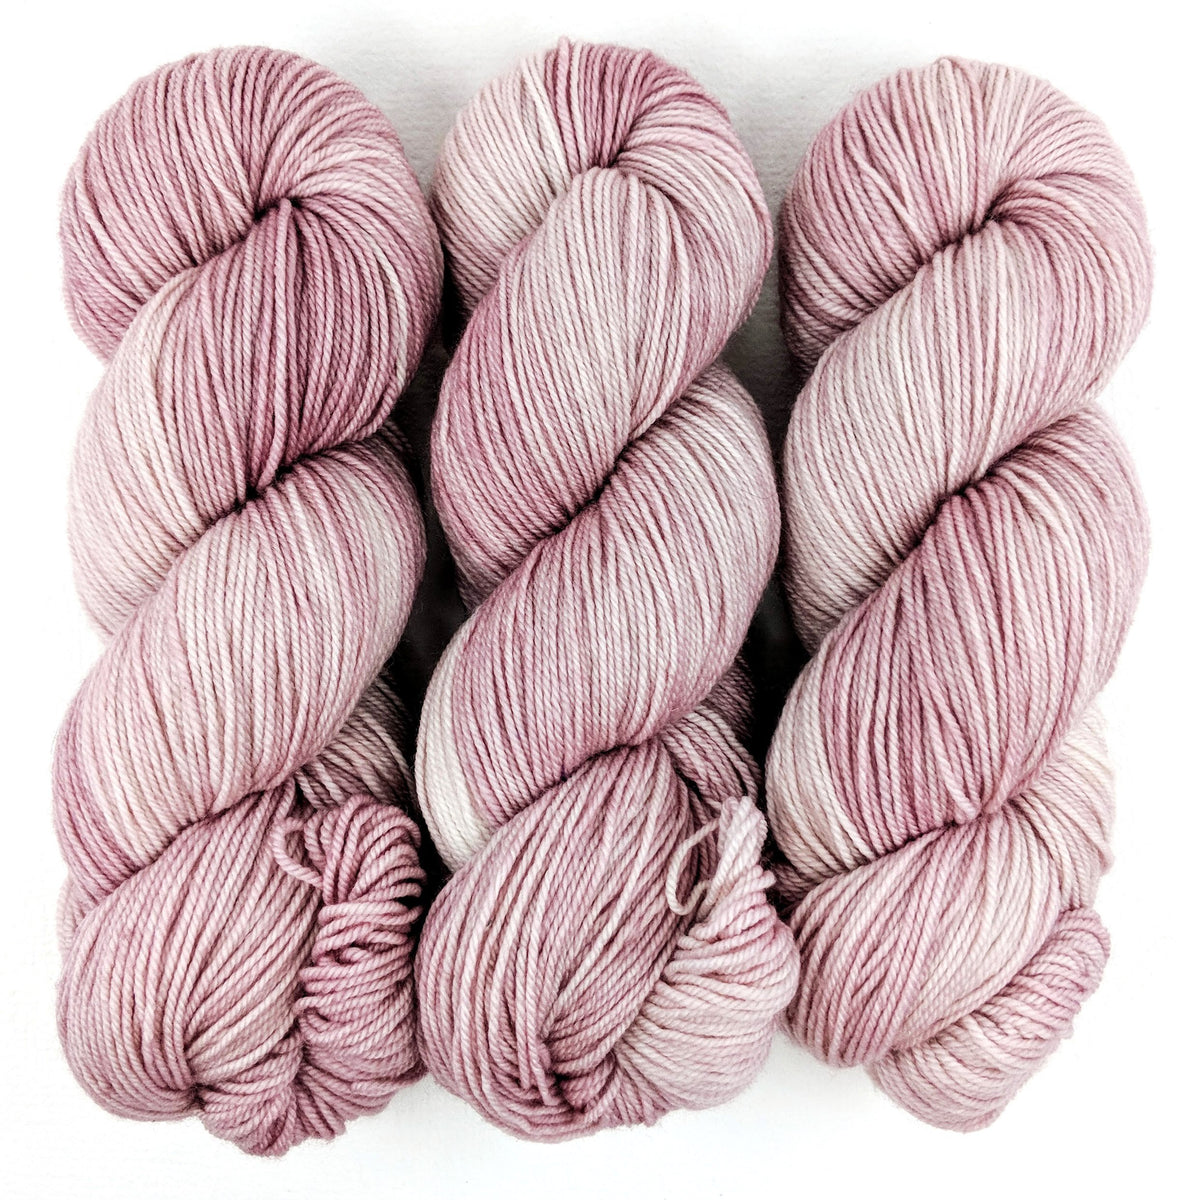 Apple Blossom - Bunny Hug Sport - Dyed Stock